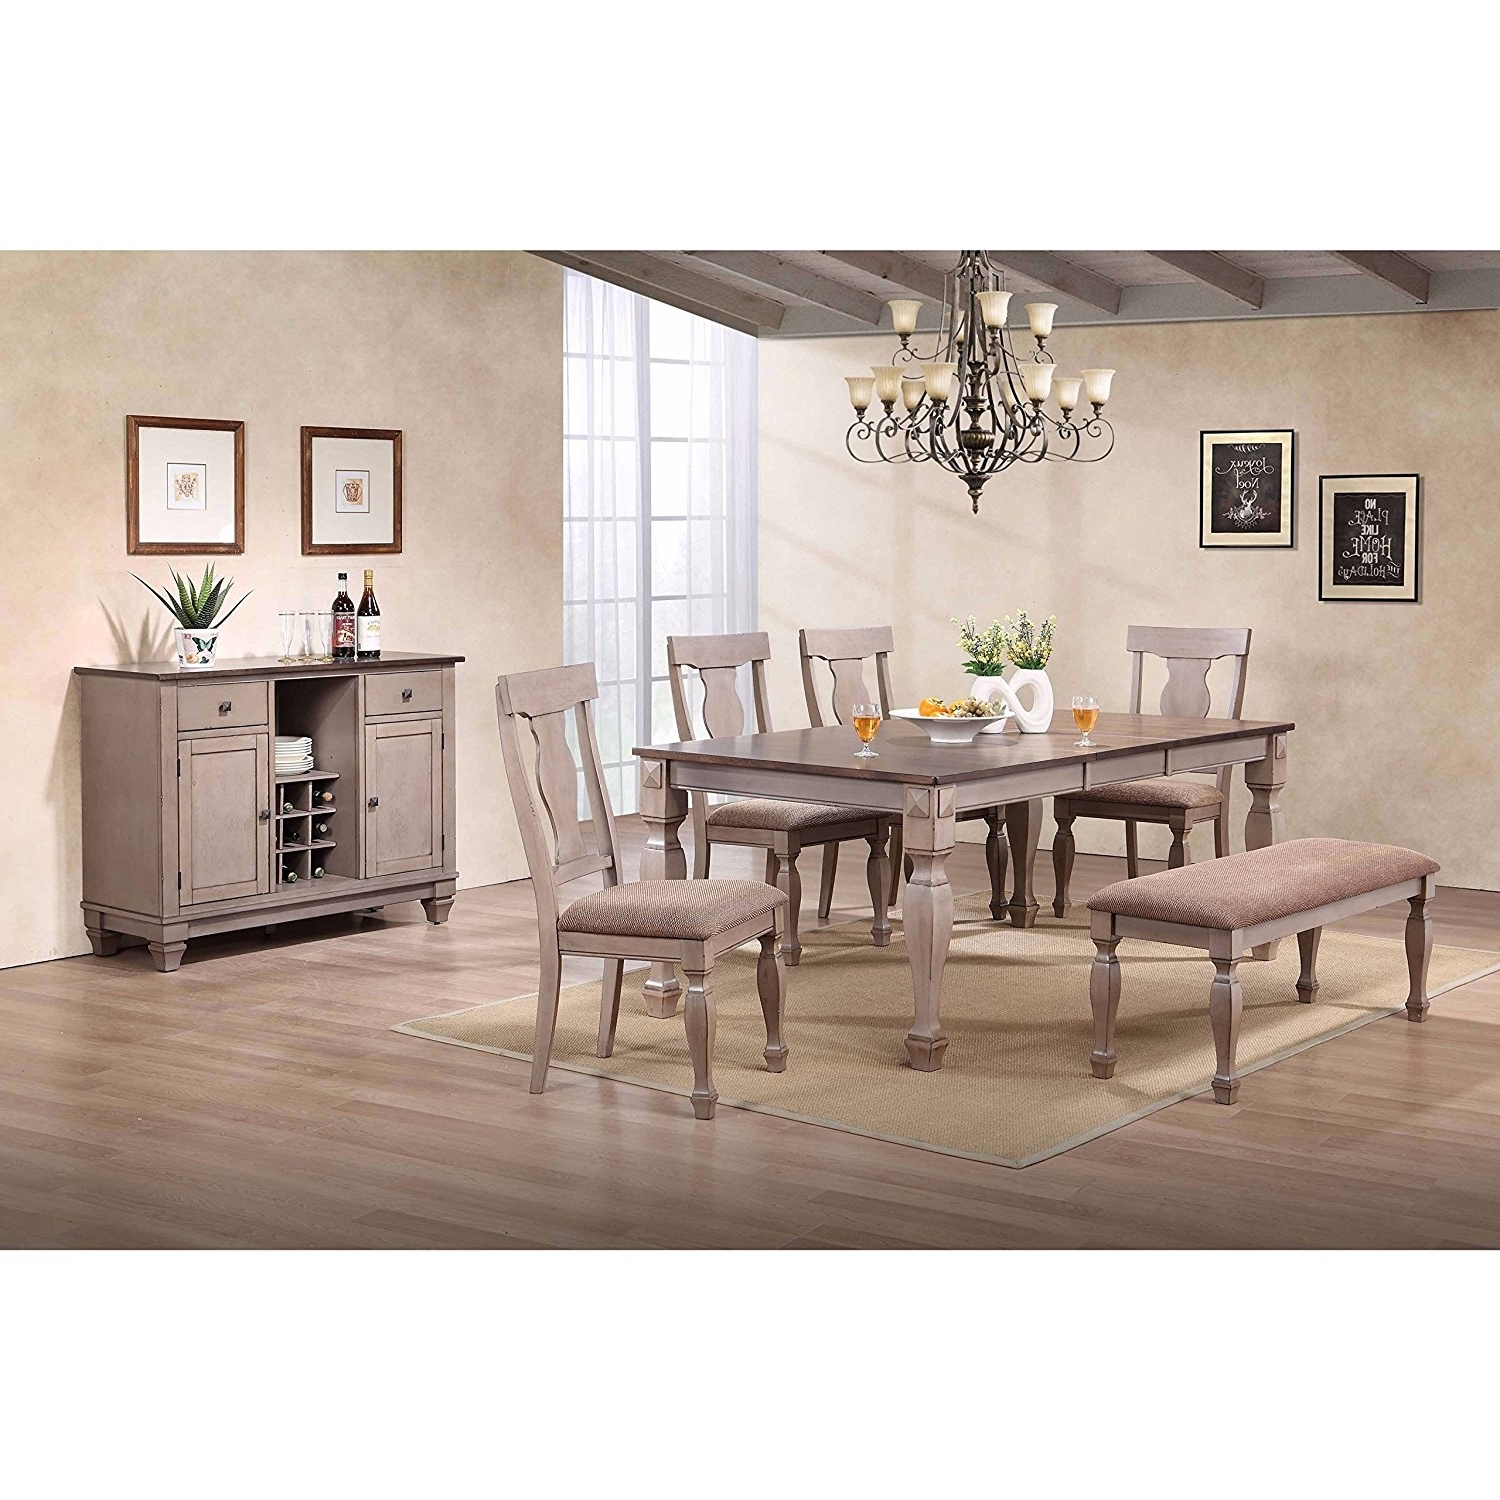 Most Popular Candice Ii 5 Piece Round Dining Sets With Slat Back Side Chairs Inside Cheap Two Tone Dining Set, Find Two Tone Dining Set Deals On Line At (View 14 of 25)